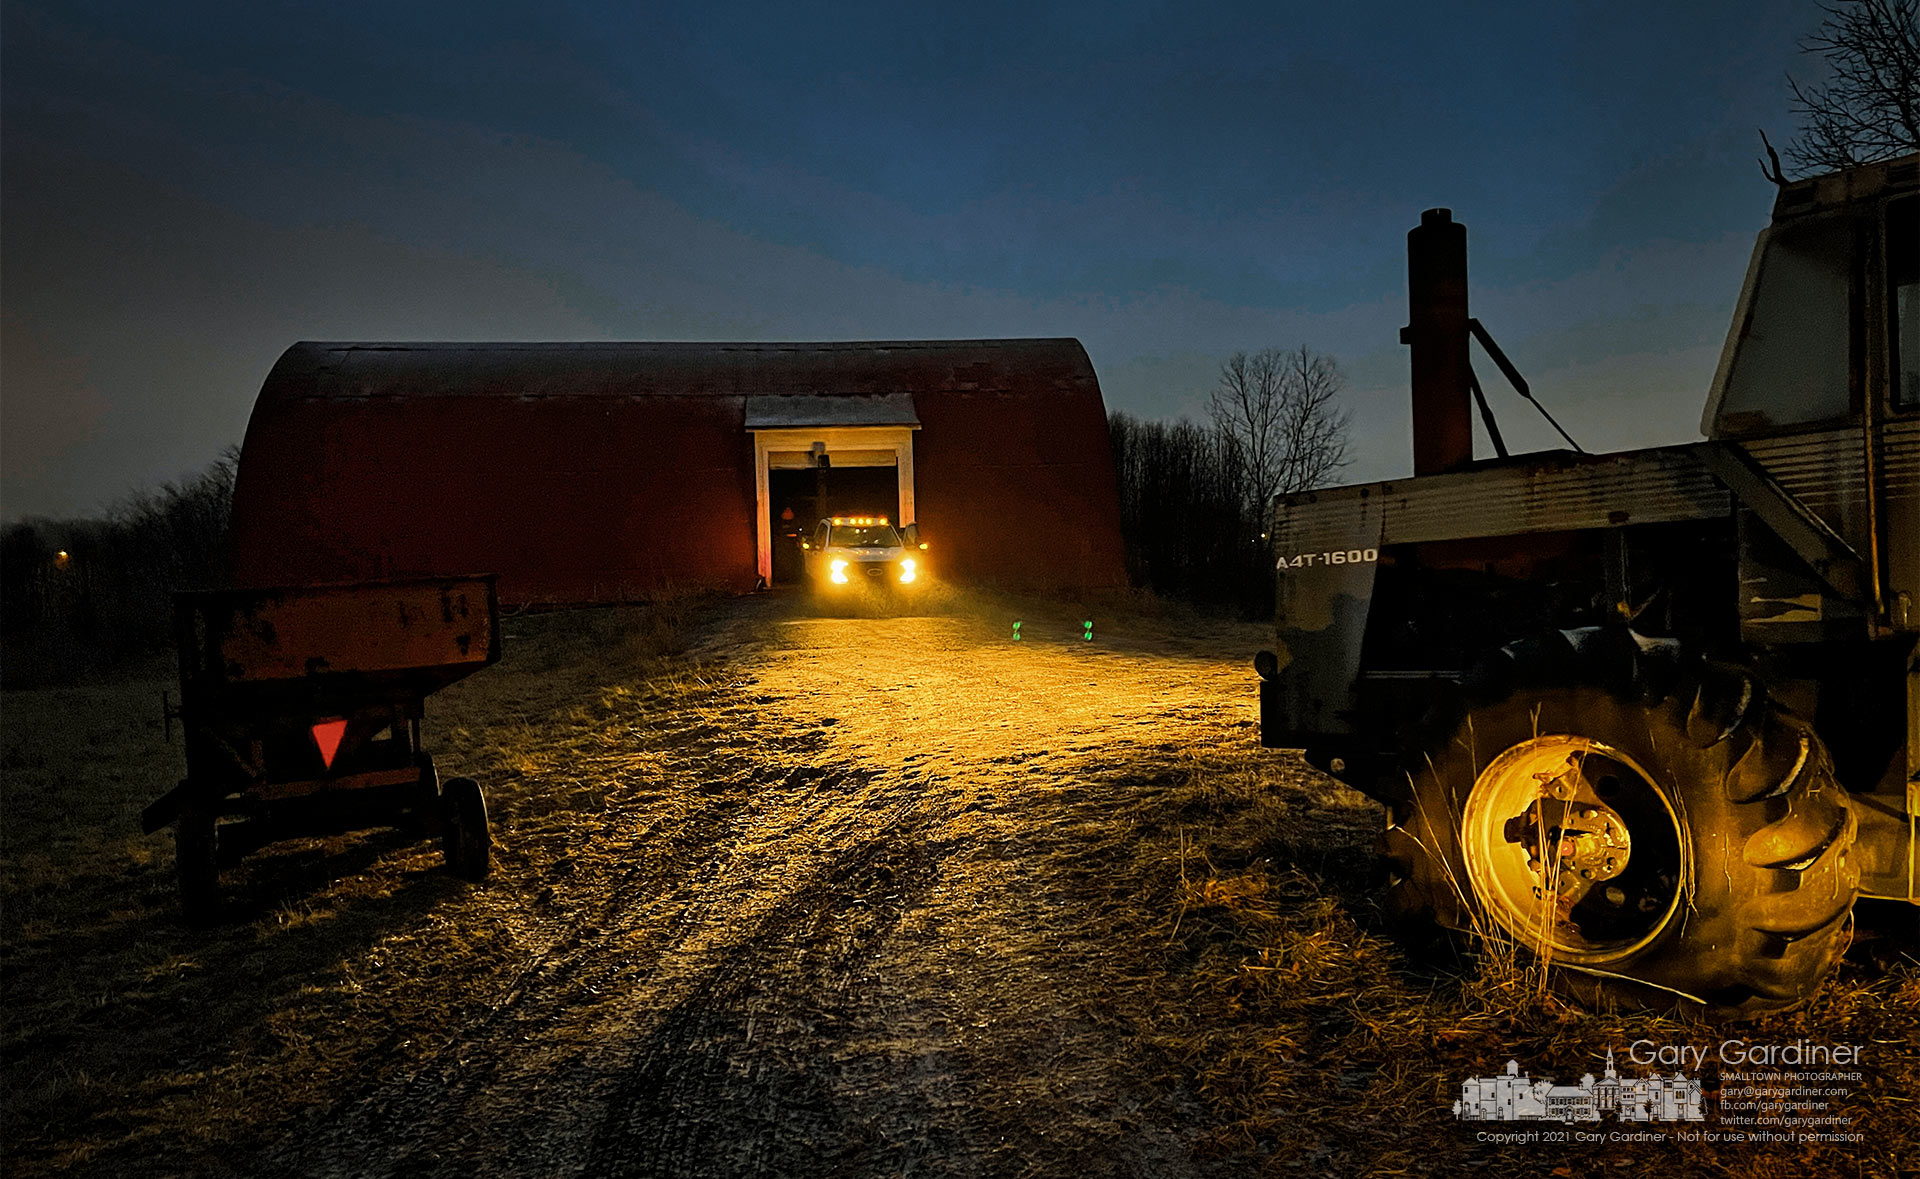 A truck's light brightens the road in front of the Braun Farm where the corn picker continues to be repaired. My Final Photo for Jan. 24, 2021.